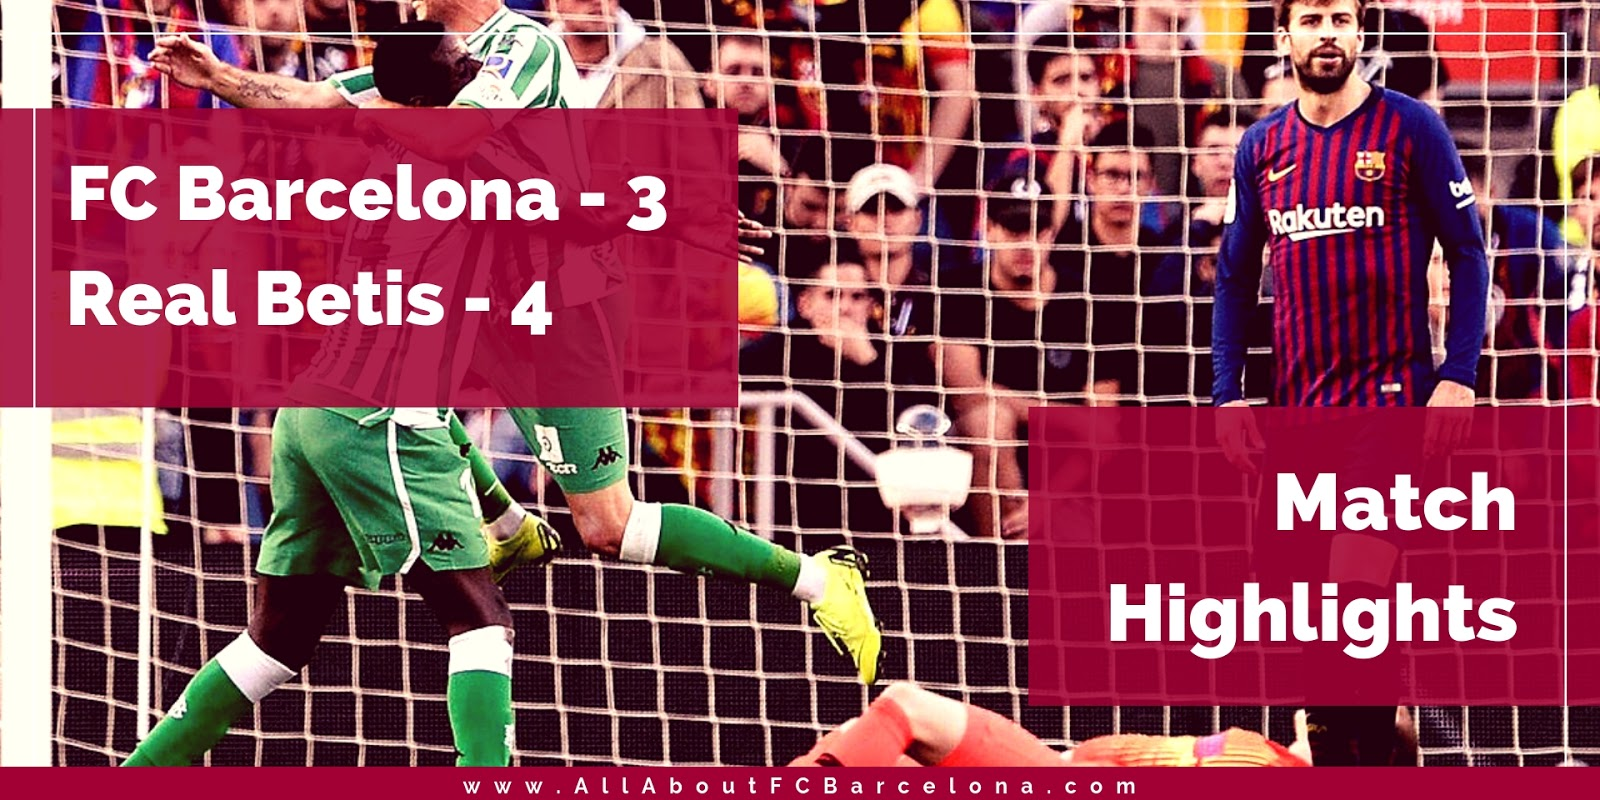 FC Barcelona vs Real betis Match Highlights #Barca #BarcaBetis #BarcaVideos